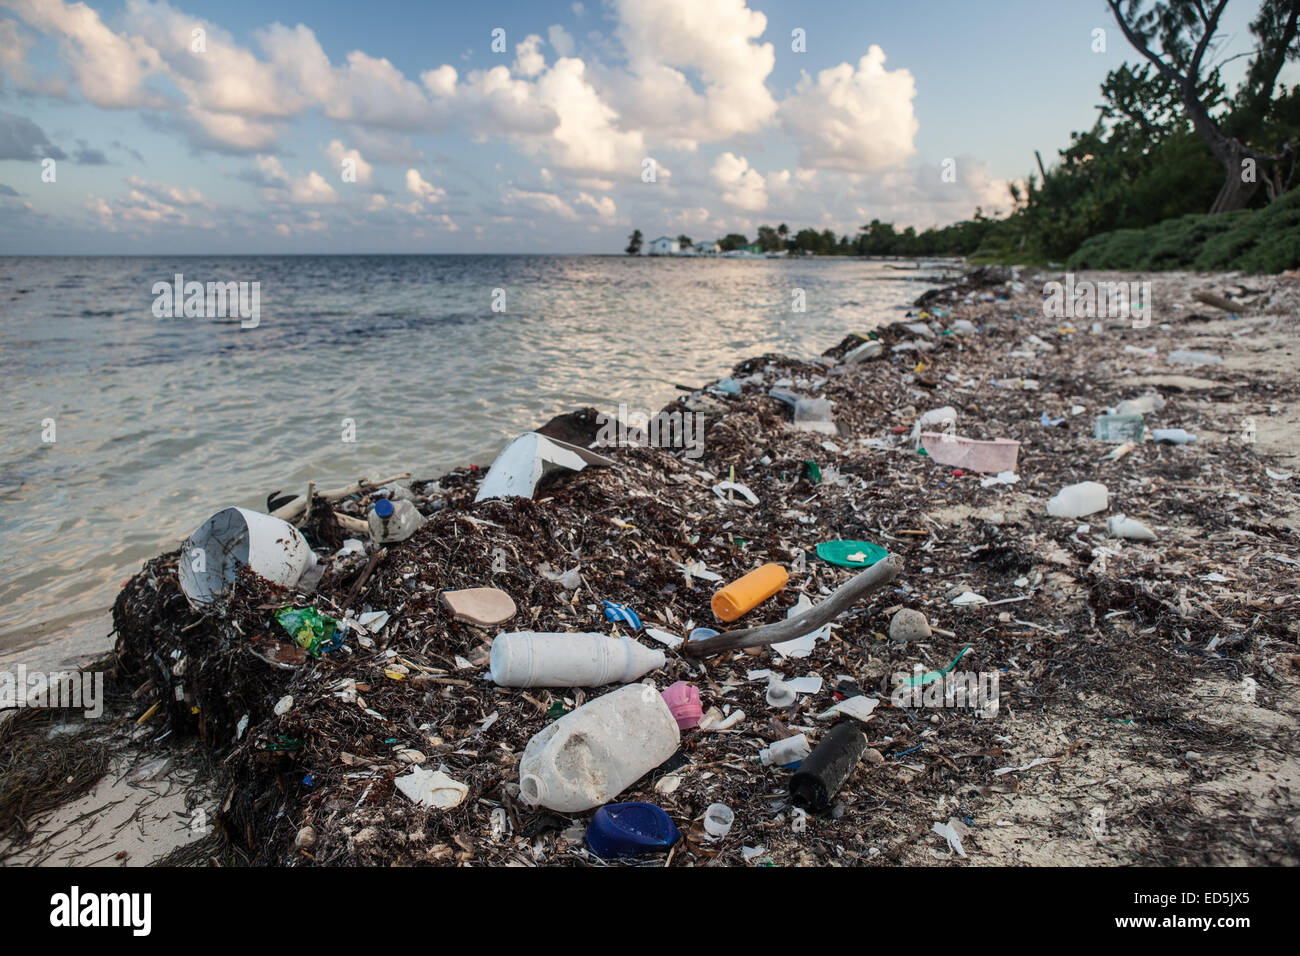 Plastic garbage has washed up on a remote island off the coast of Belize in the Caribbean Sea. - Stock Image